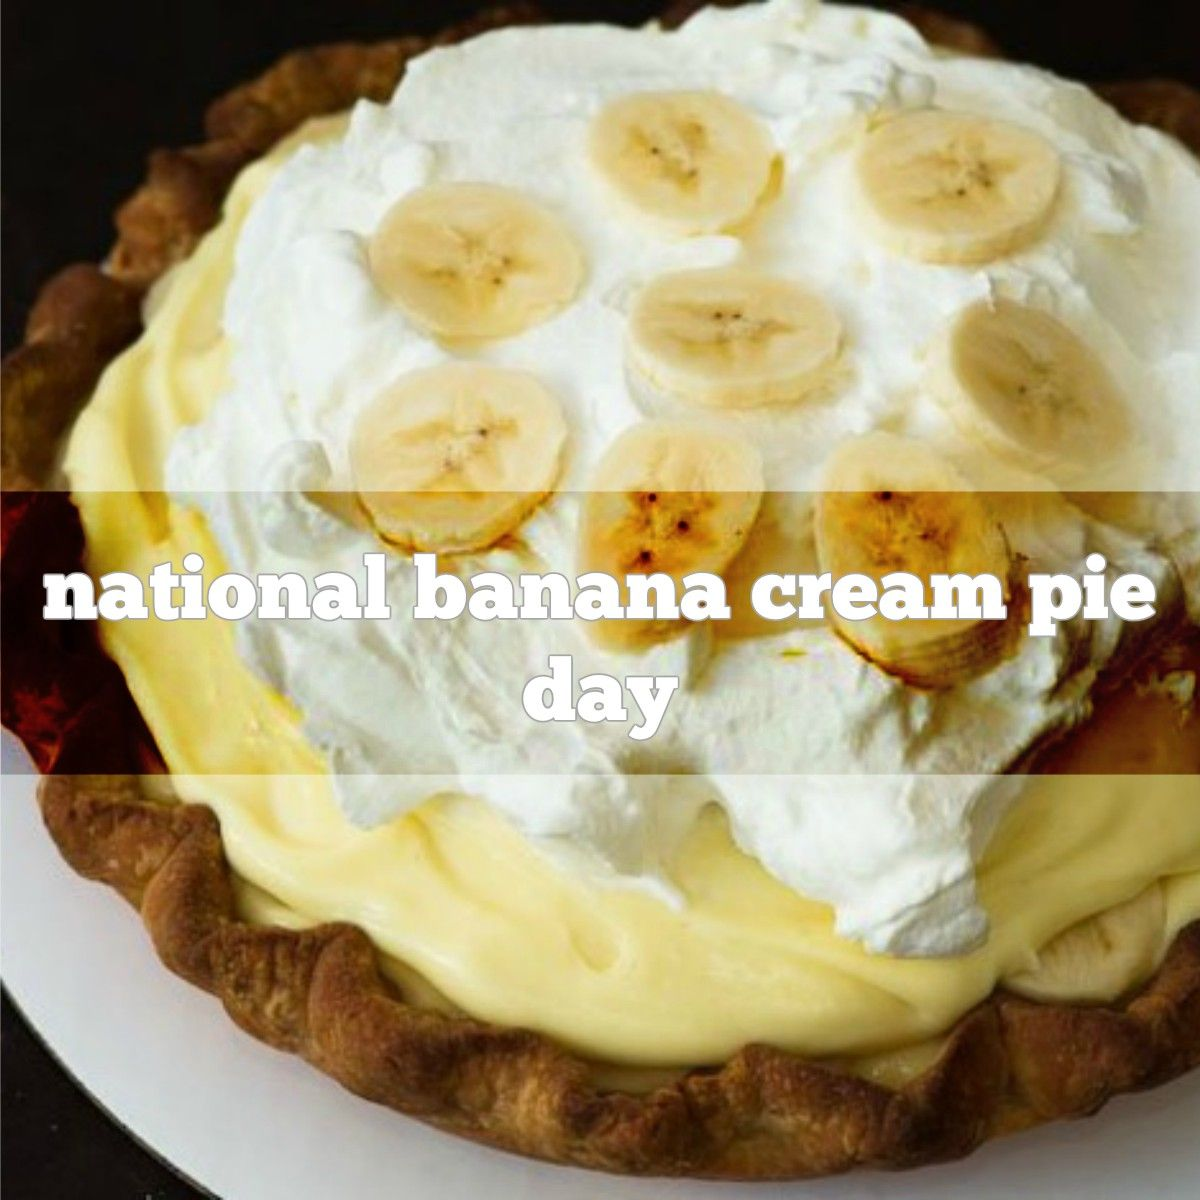 March 2nd is National Banana Cream Pie Day Pie day